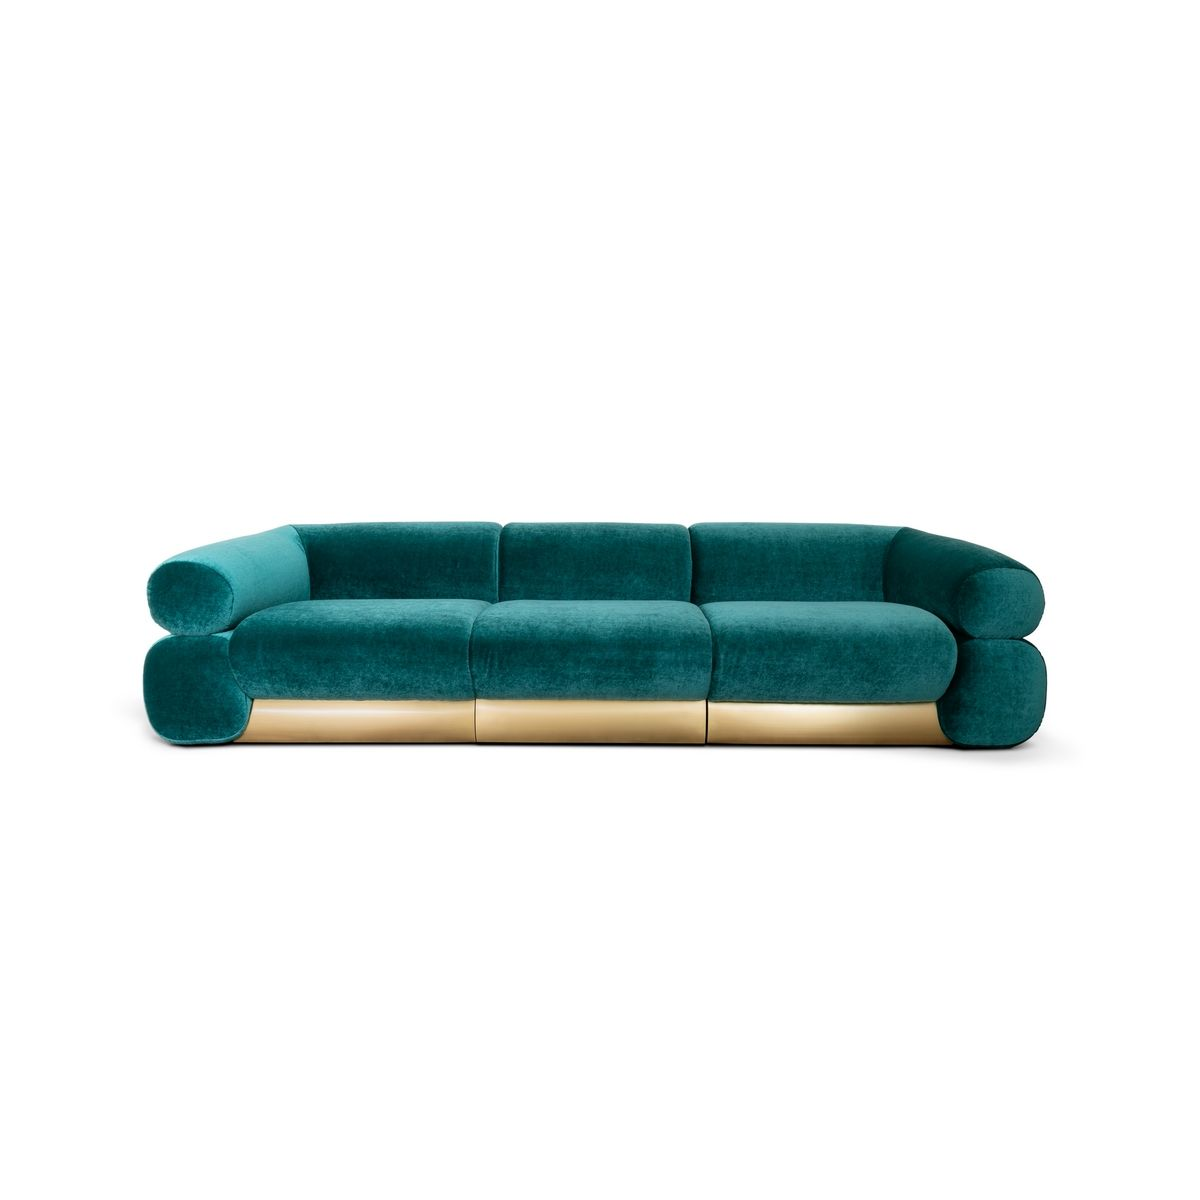 Seating Products: Special Discounts Only This Week!